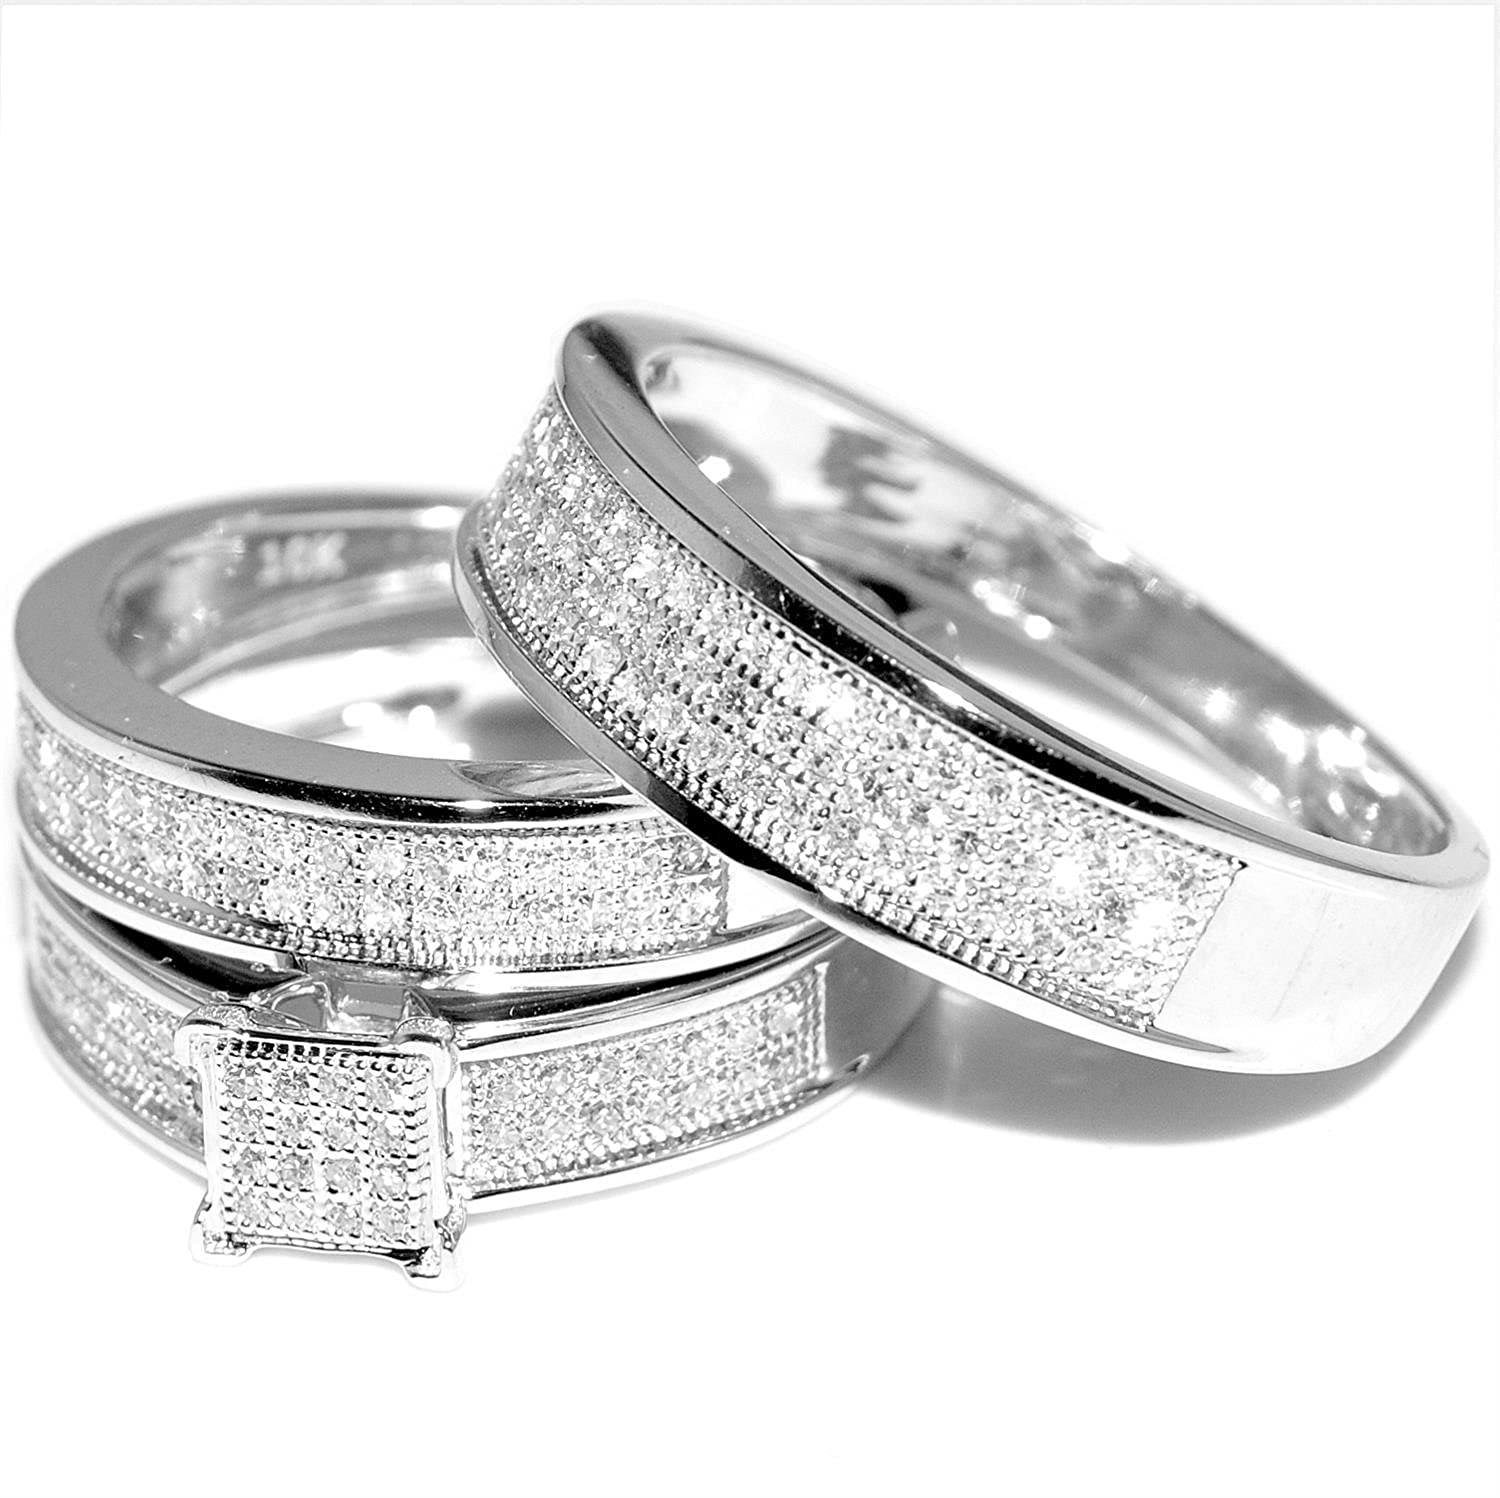 white gold trio wedding set mens womens wedding rings matching 040cttw diamondamazoncom - Wedding Set Rings